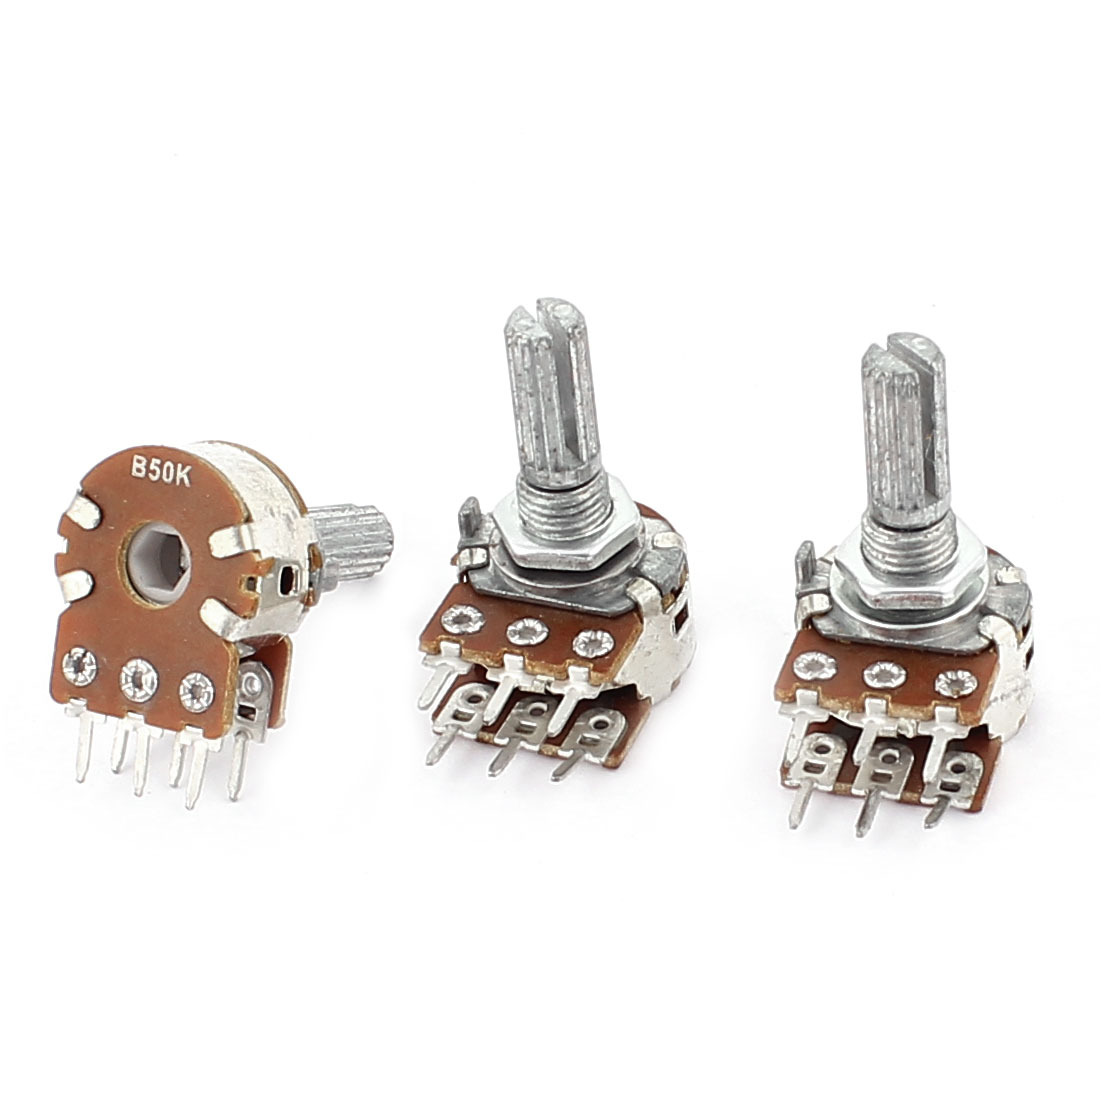 3Pcs B50K 50K Ohm 6mm Knurled Shaft Double Linear B Type Adjustable Rotary Knob Potentiometers